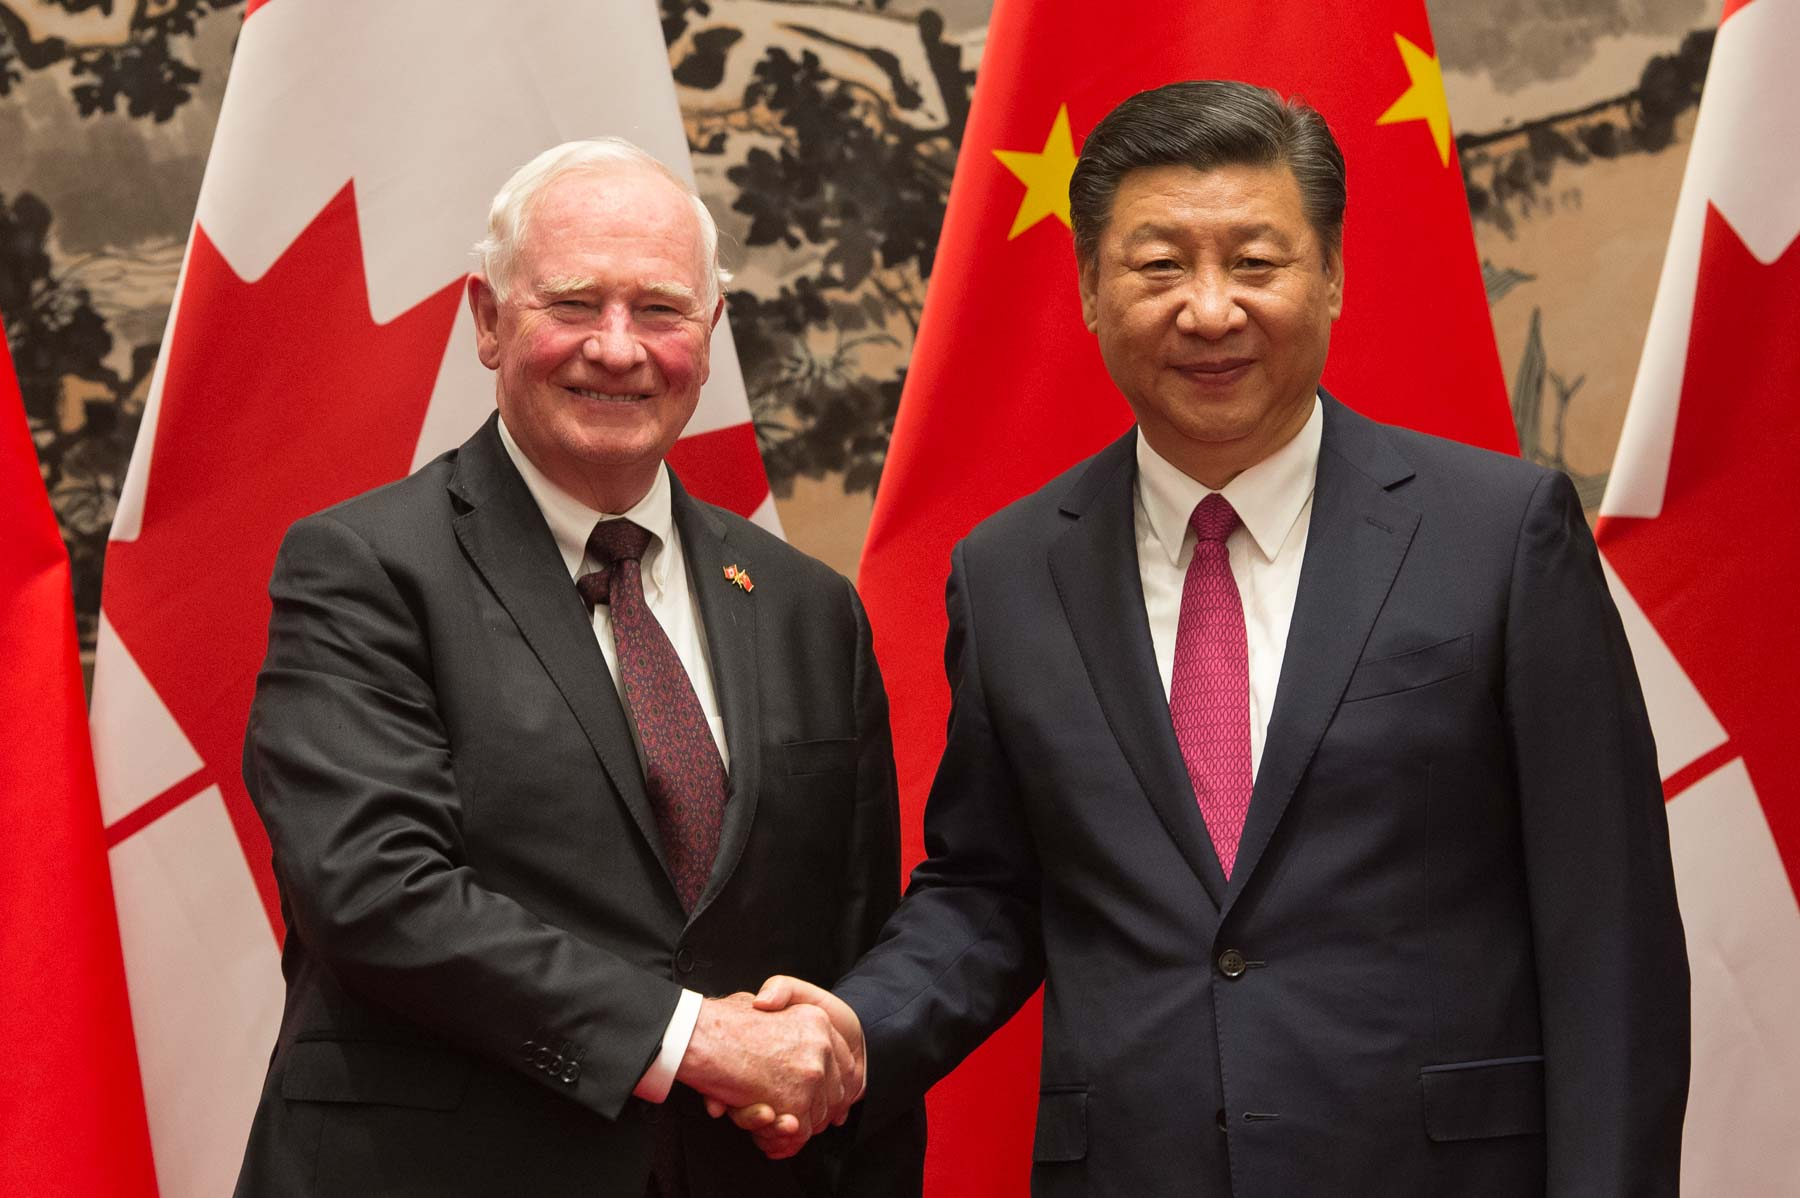 The Governor General met with President Xi Jinping to reinforce Canada and China's long-standing relations in Beijing.